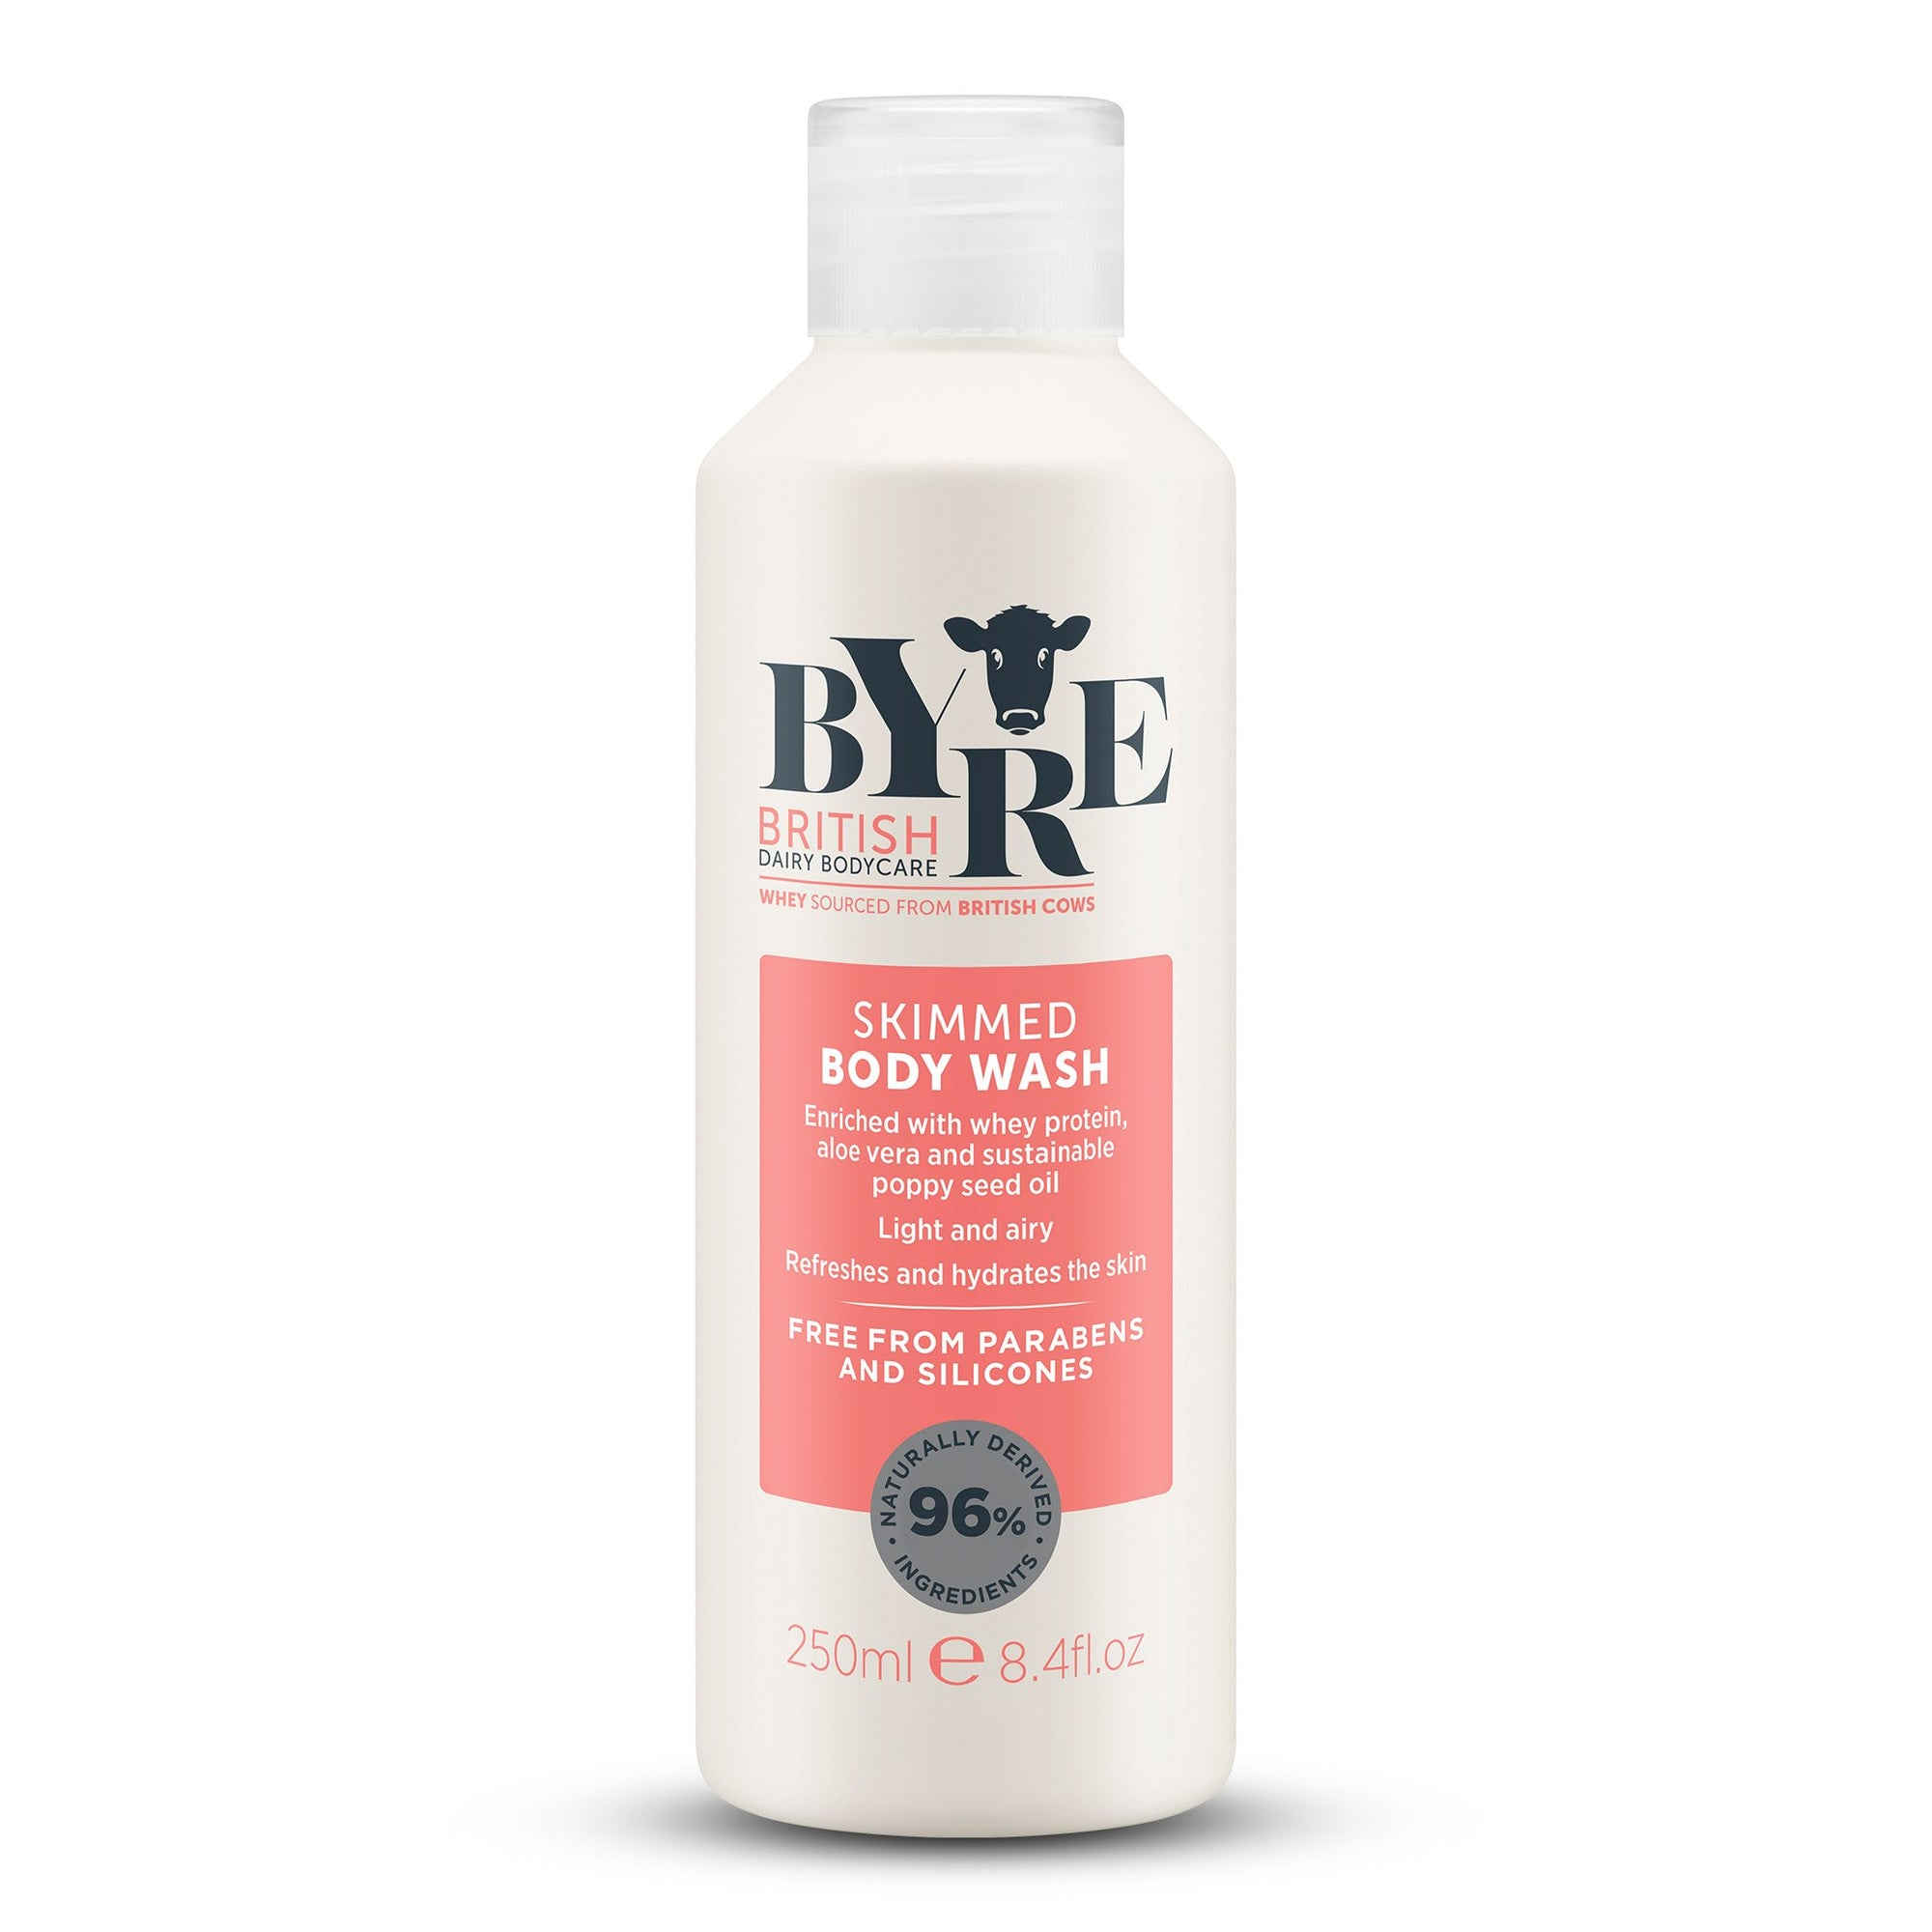 Byre Body Wash Skimmed (250ml / 8.4fl.oz)